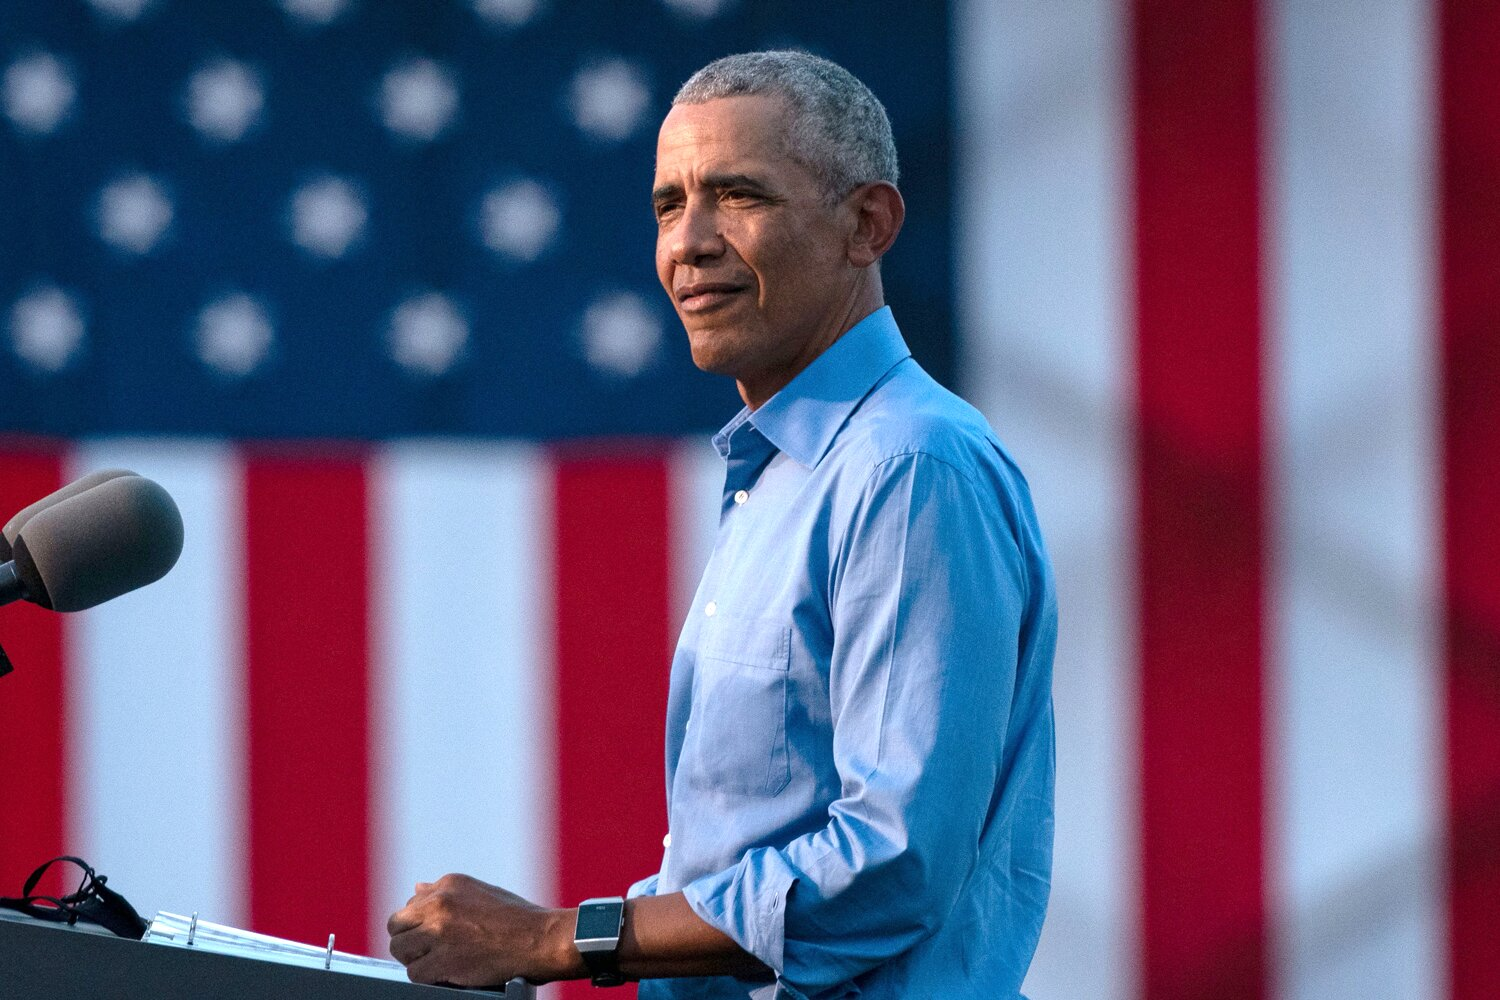 Former U.S. President Barack Obama speaks at a drive-in rally for Democratic presidential nominee Joe Biden